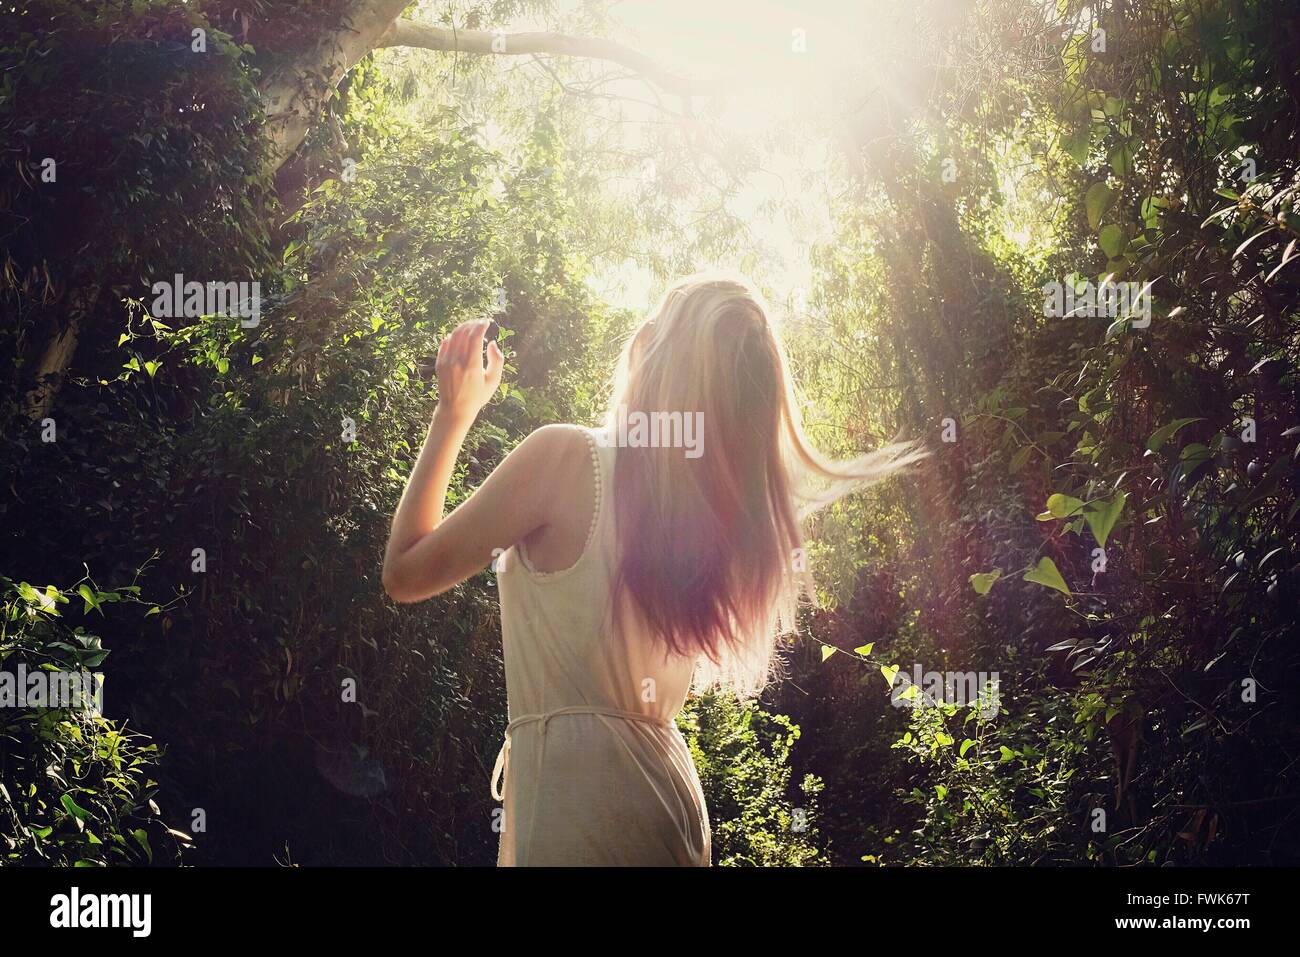 Rear View Of A Woman Standing Against Trees - Stock Image